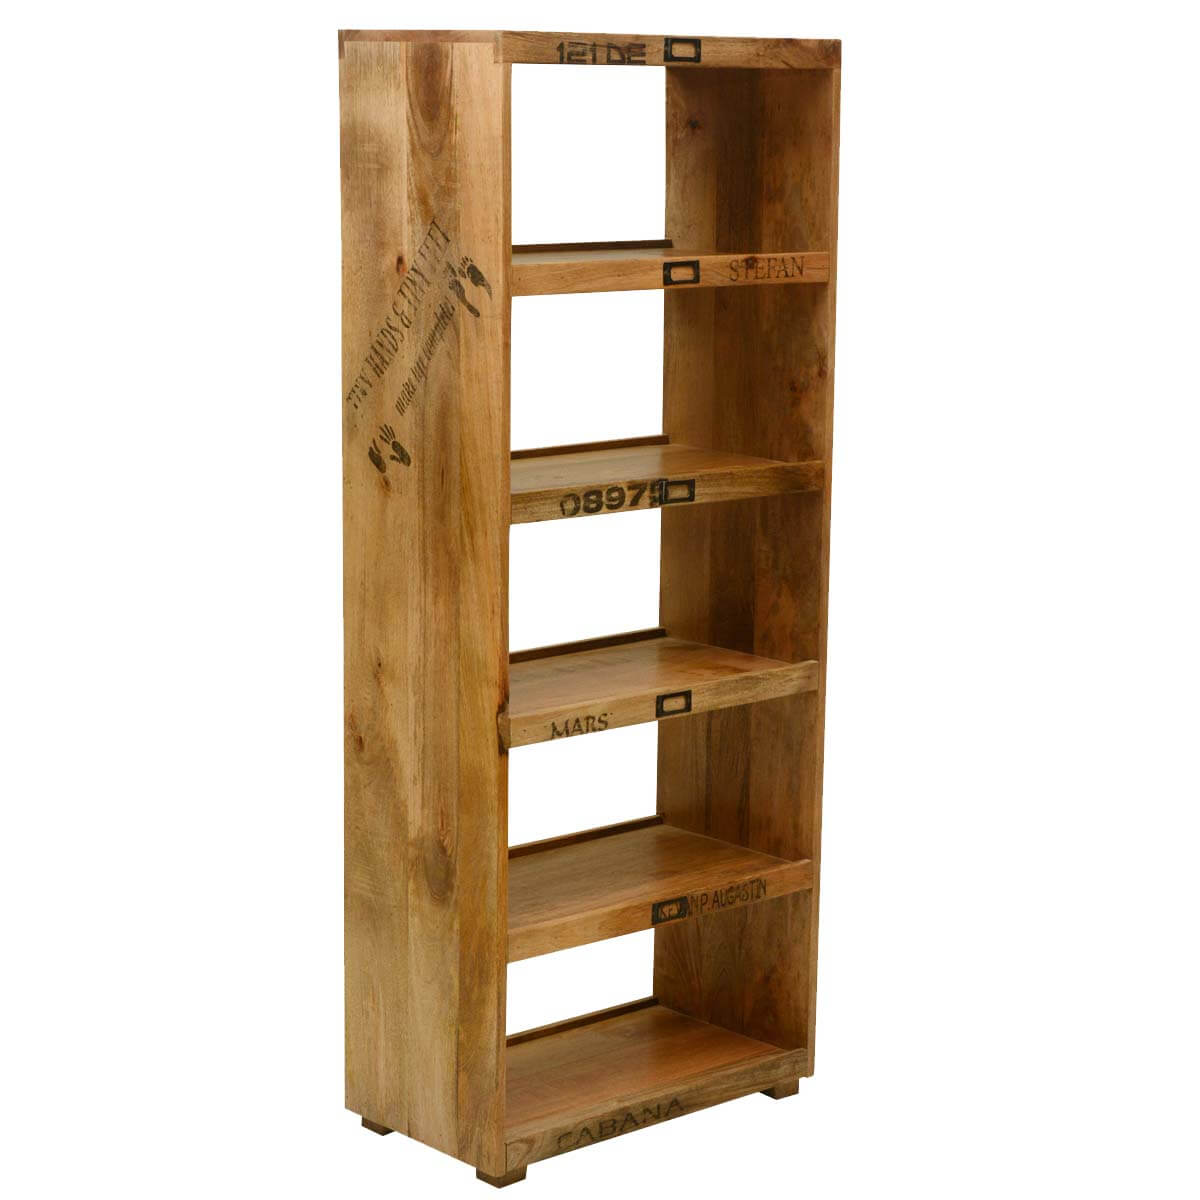 Home furniture by room living room bookcase tiny hands mango wood open